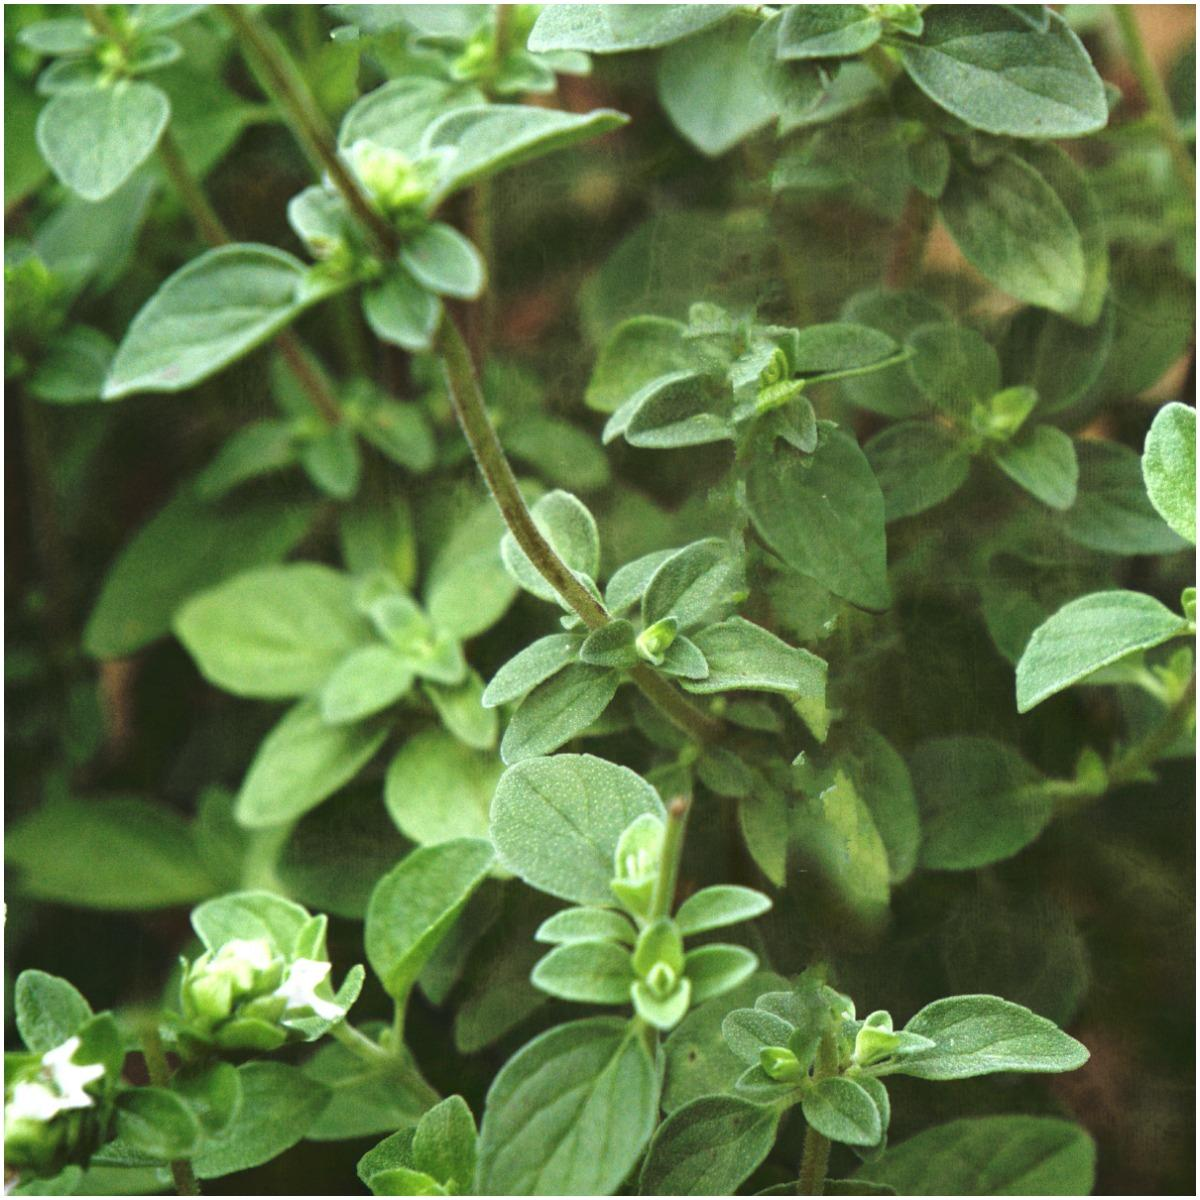 Oregano Plant That Create Positive Energy In Your Home